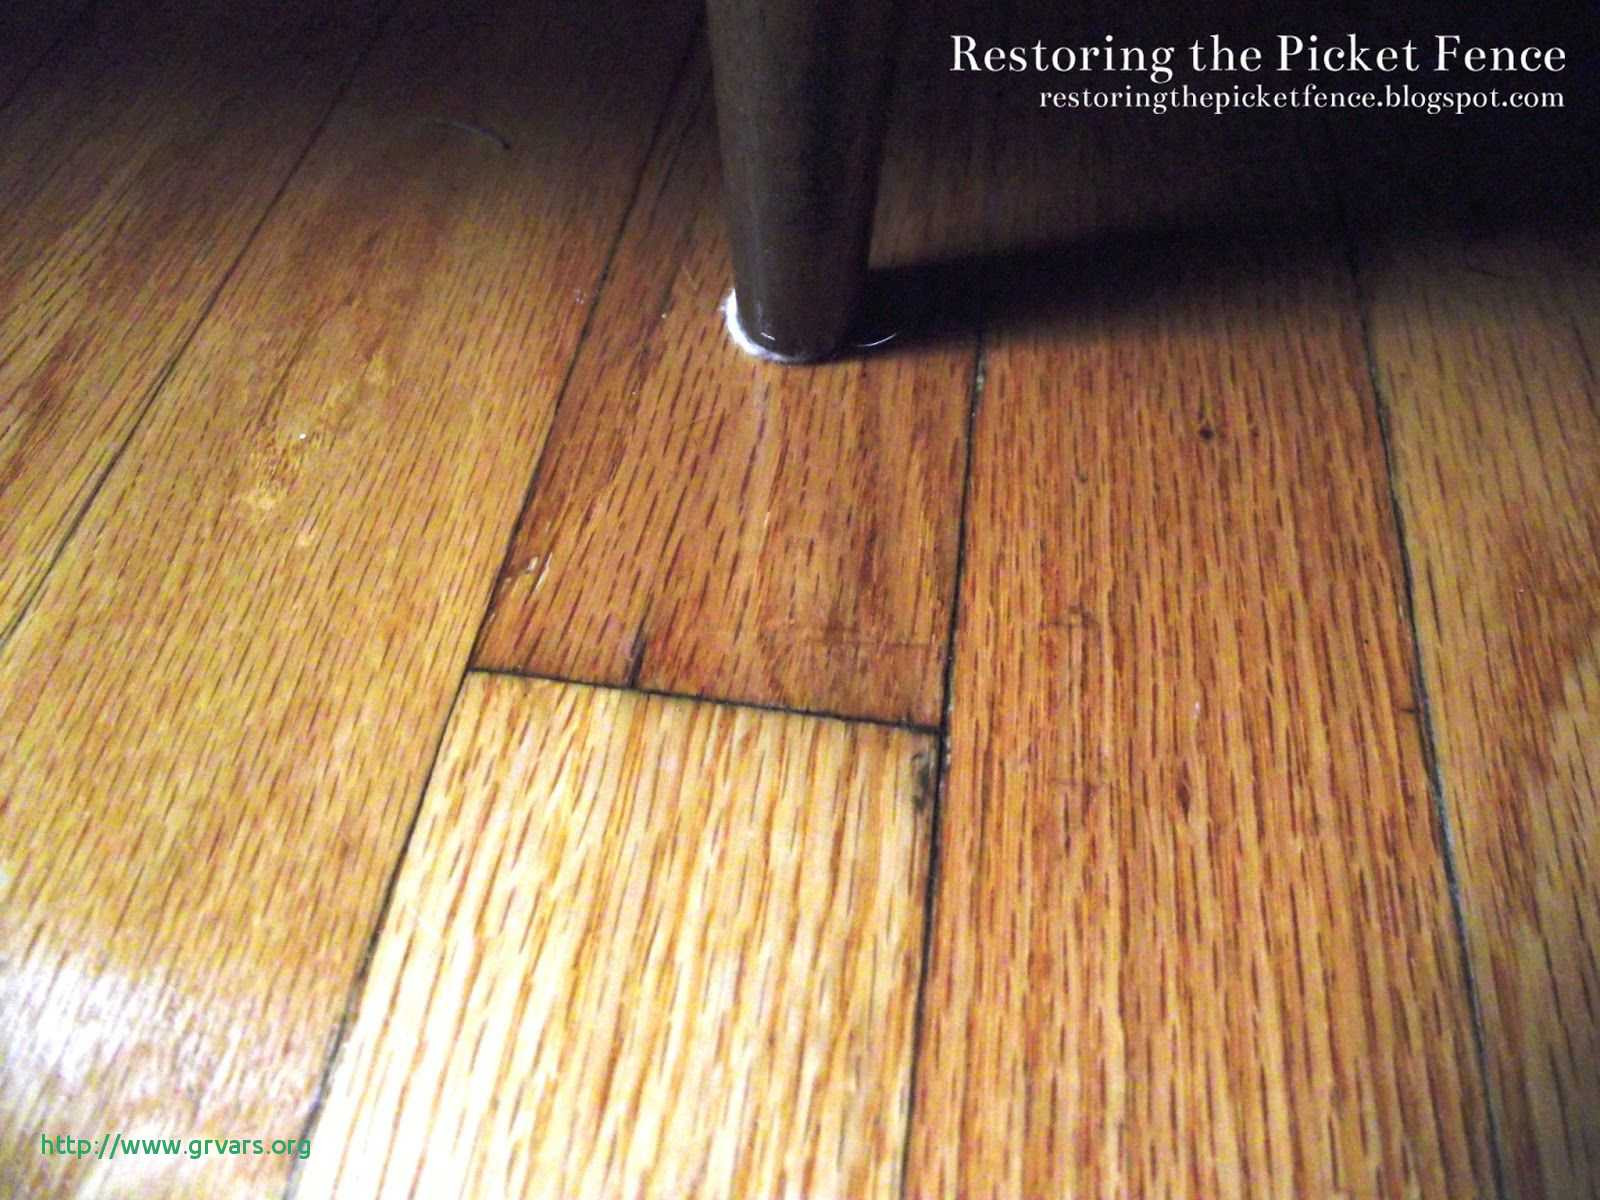 hardwood floor care vinegar of 24 inspirant homemade hardwood floor cleaner without vinegar ideas inside homemade hardwood floor cleaner without vinegar meilleur de pin by mutsumi kudo on remember pinterest